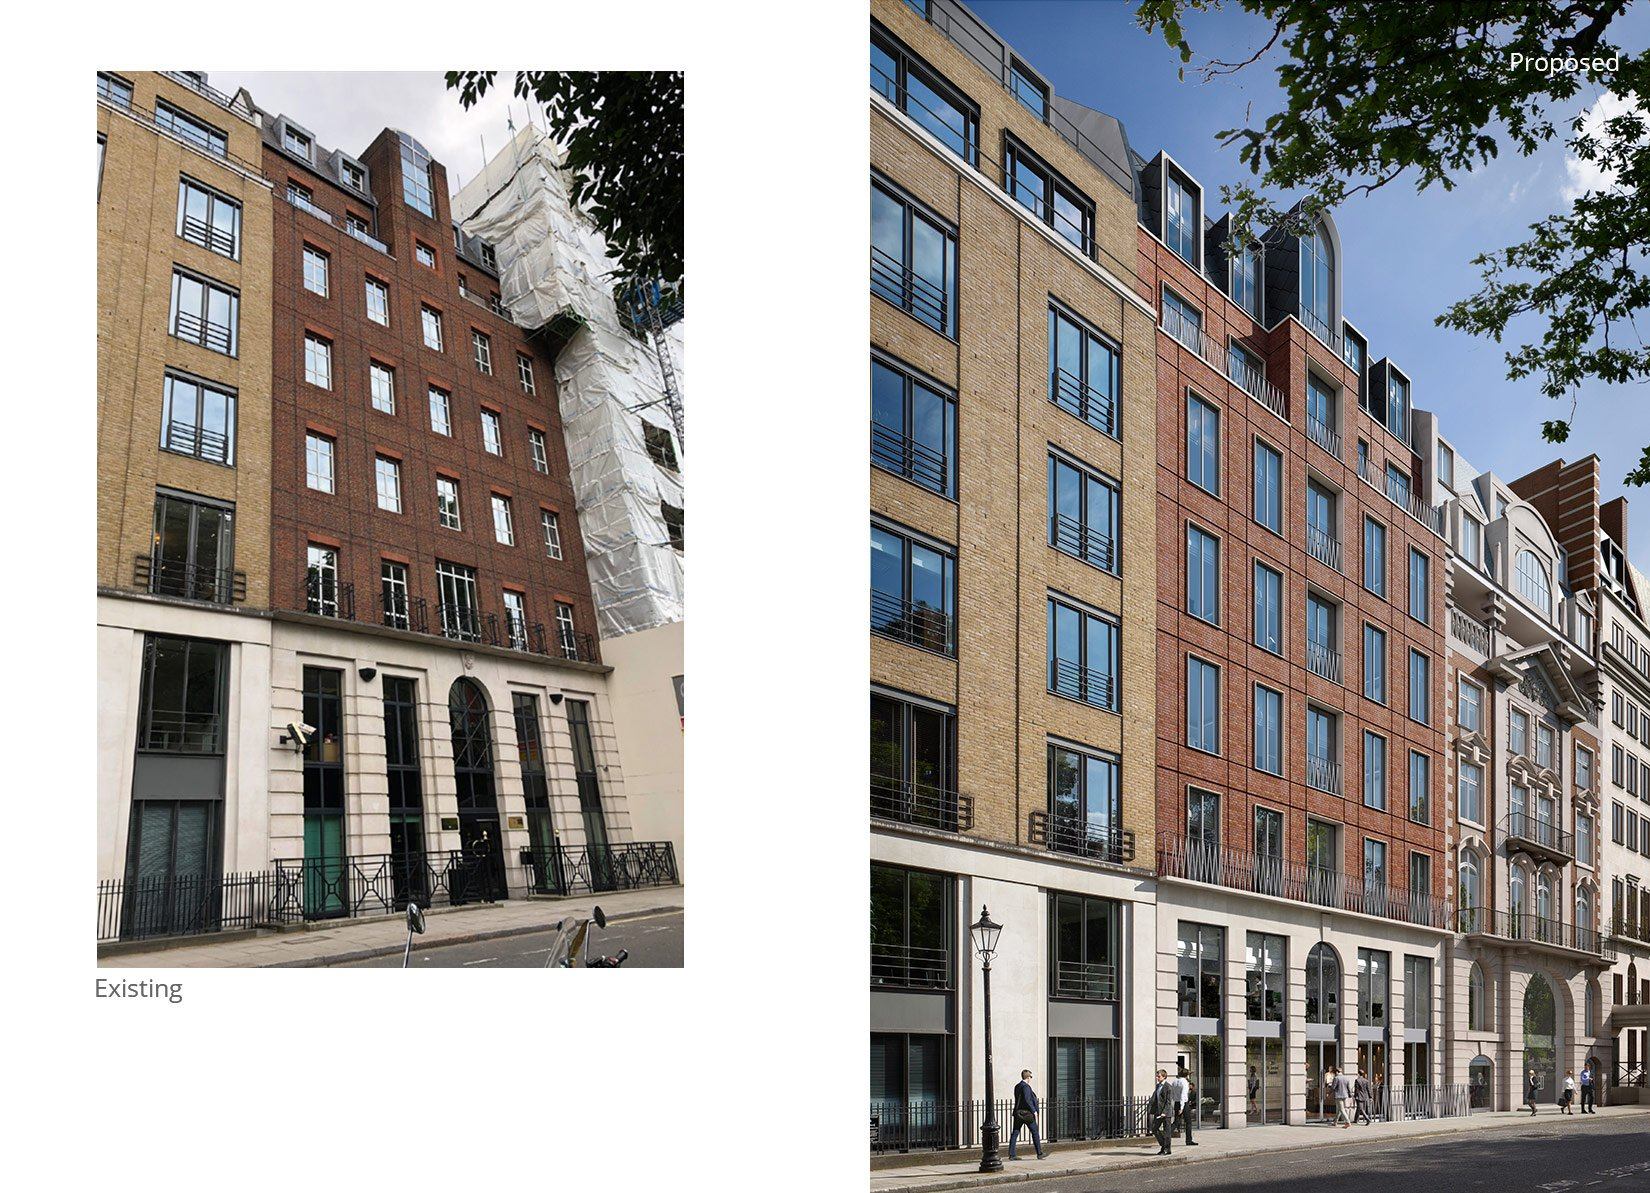 26 St James's Square, London, Existing and proposed